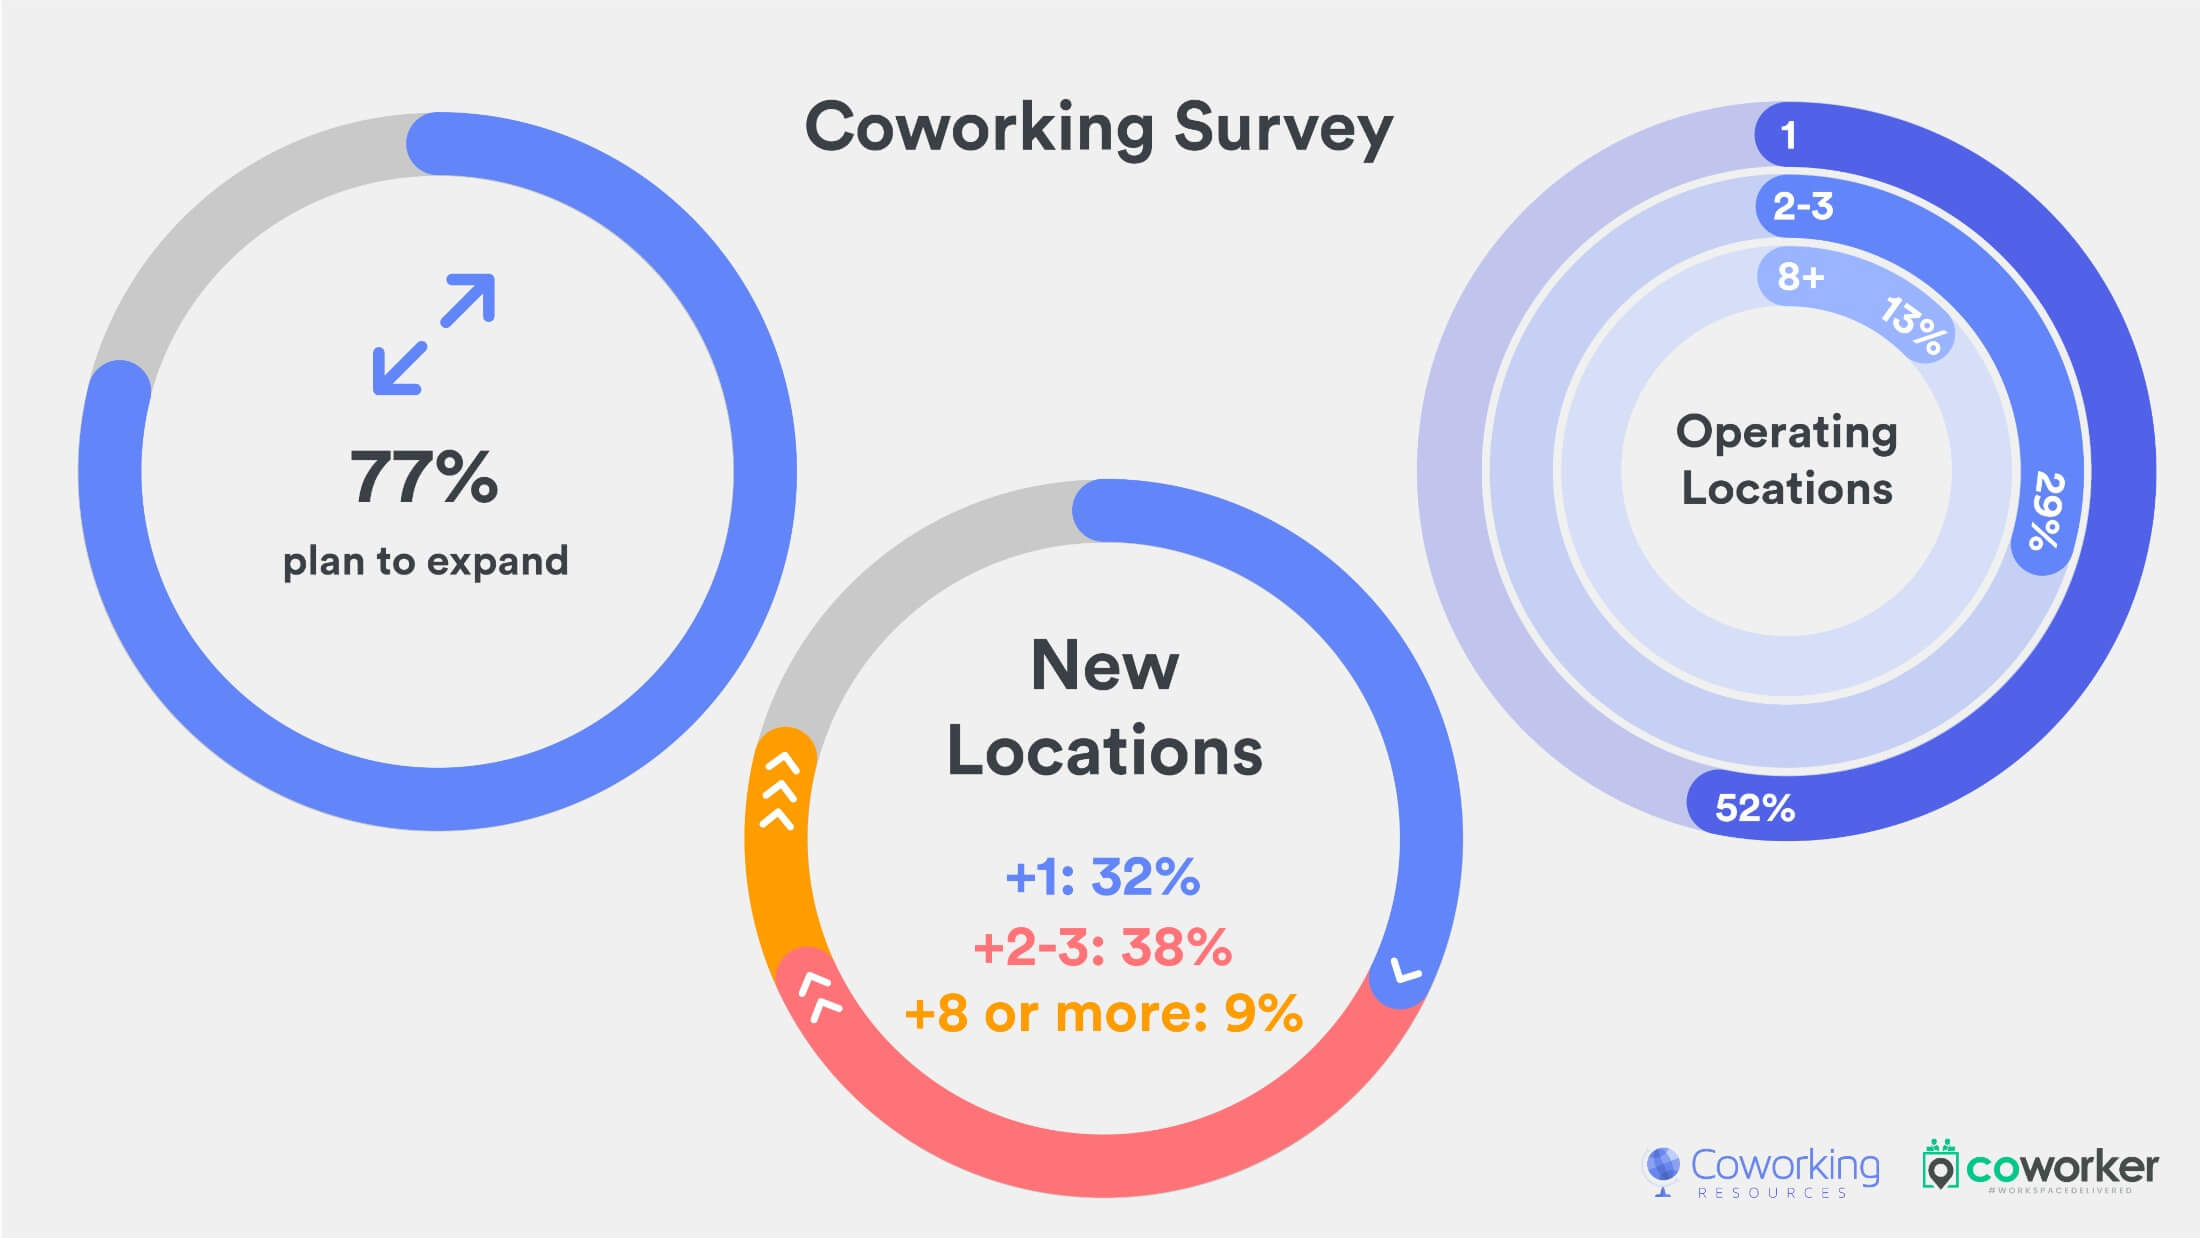 Coworking Survey